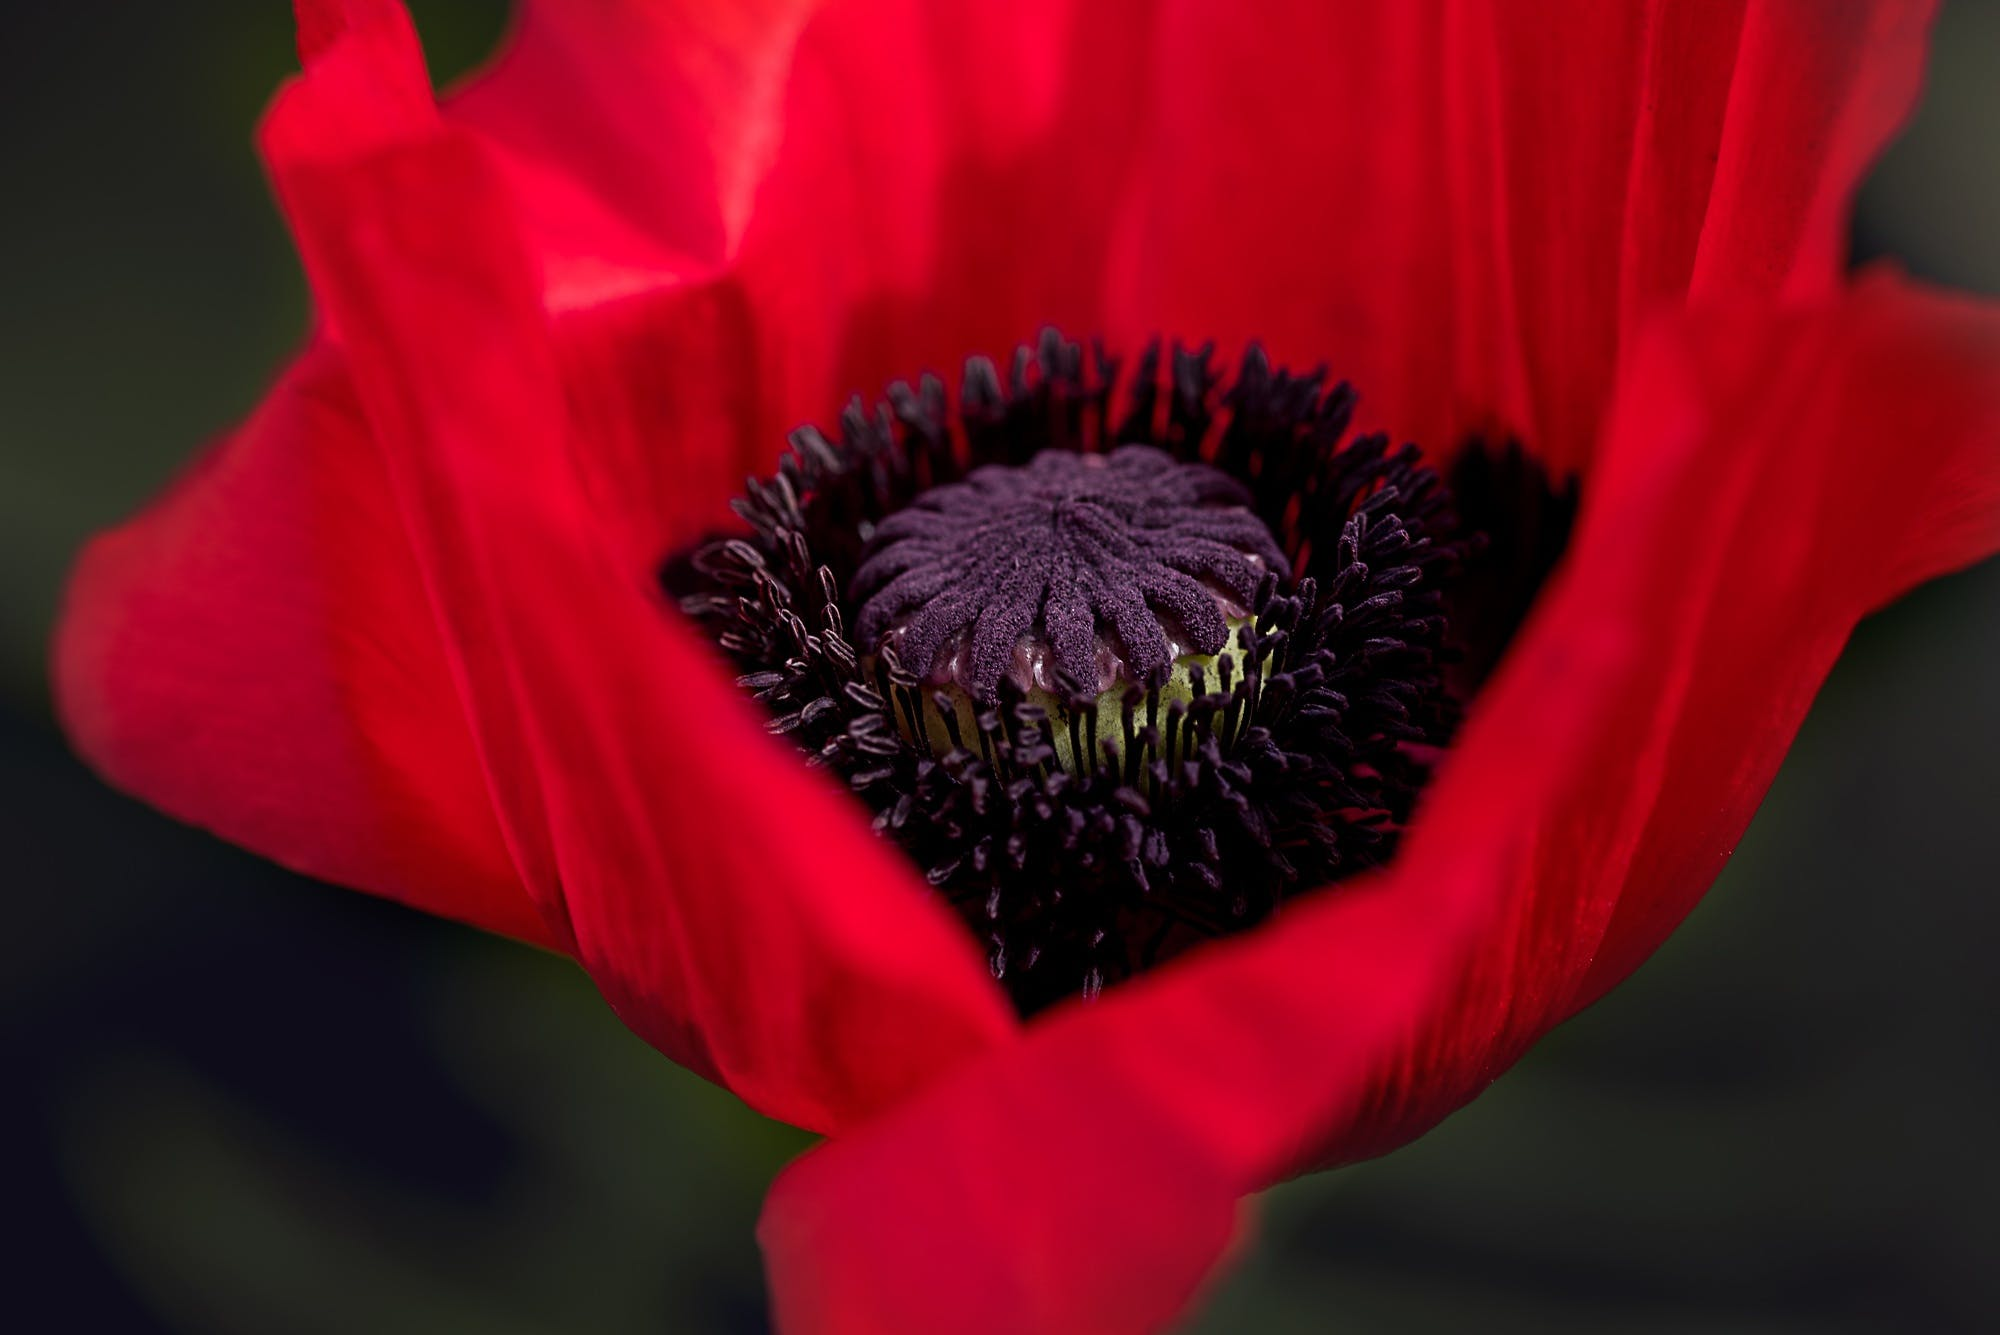 Close-up Photography of Red Poppy Flower